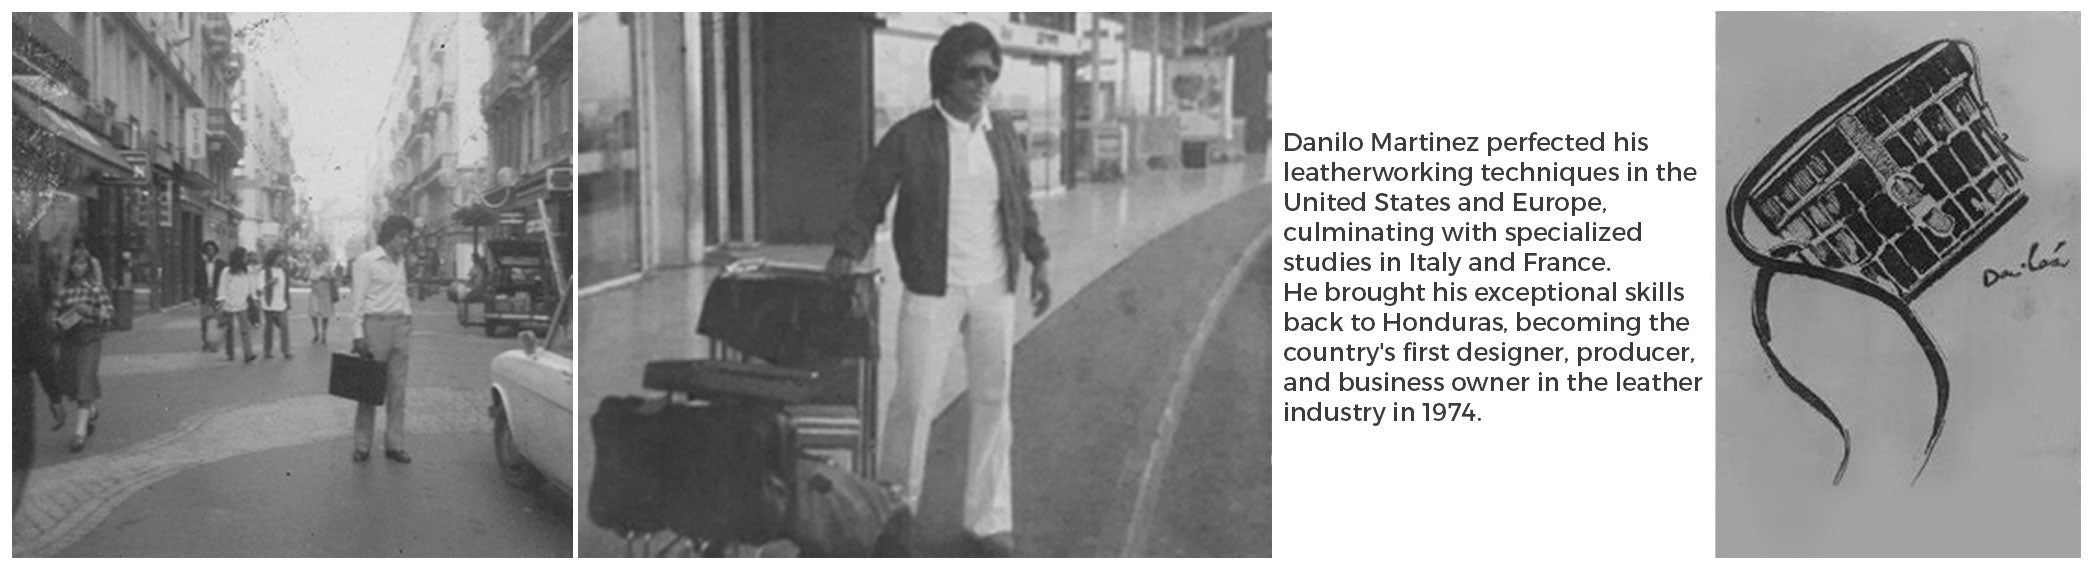 Danilo Martinez perfected his leatherworking techniques in the United States and Europe, culminating with specialized studies in Italy and France. He brought his exceptional skills back to Honduras, becoming the country's first leather designer, producer, and business owner in 1974.